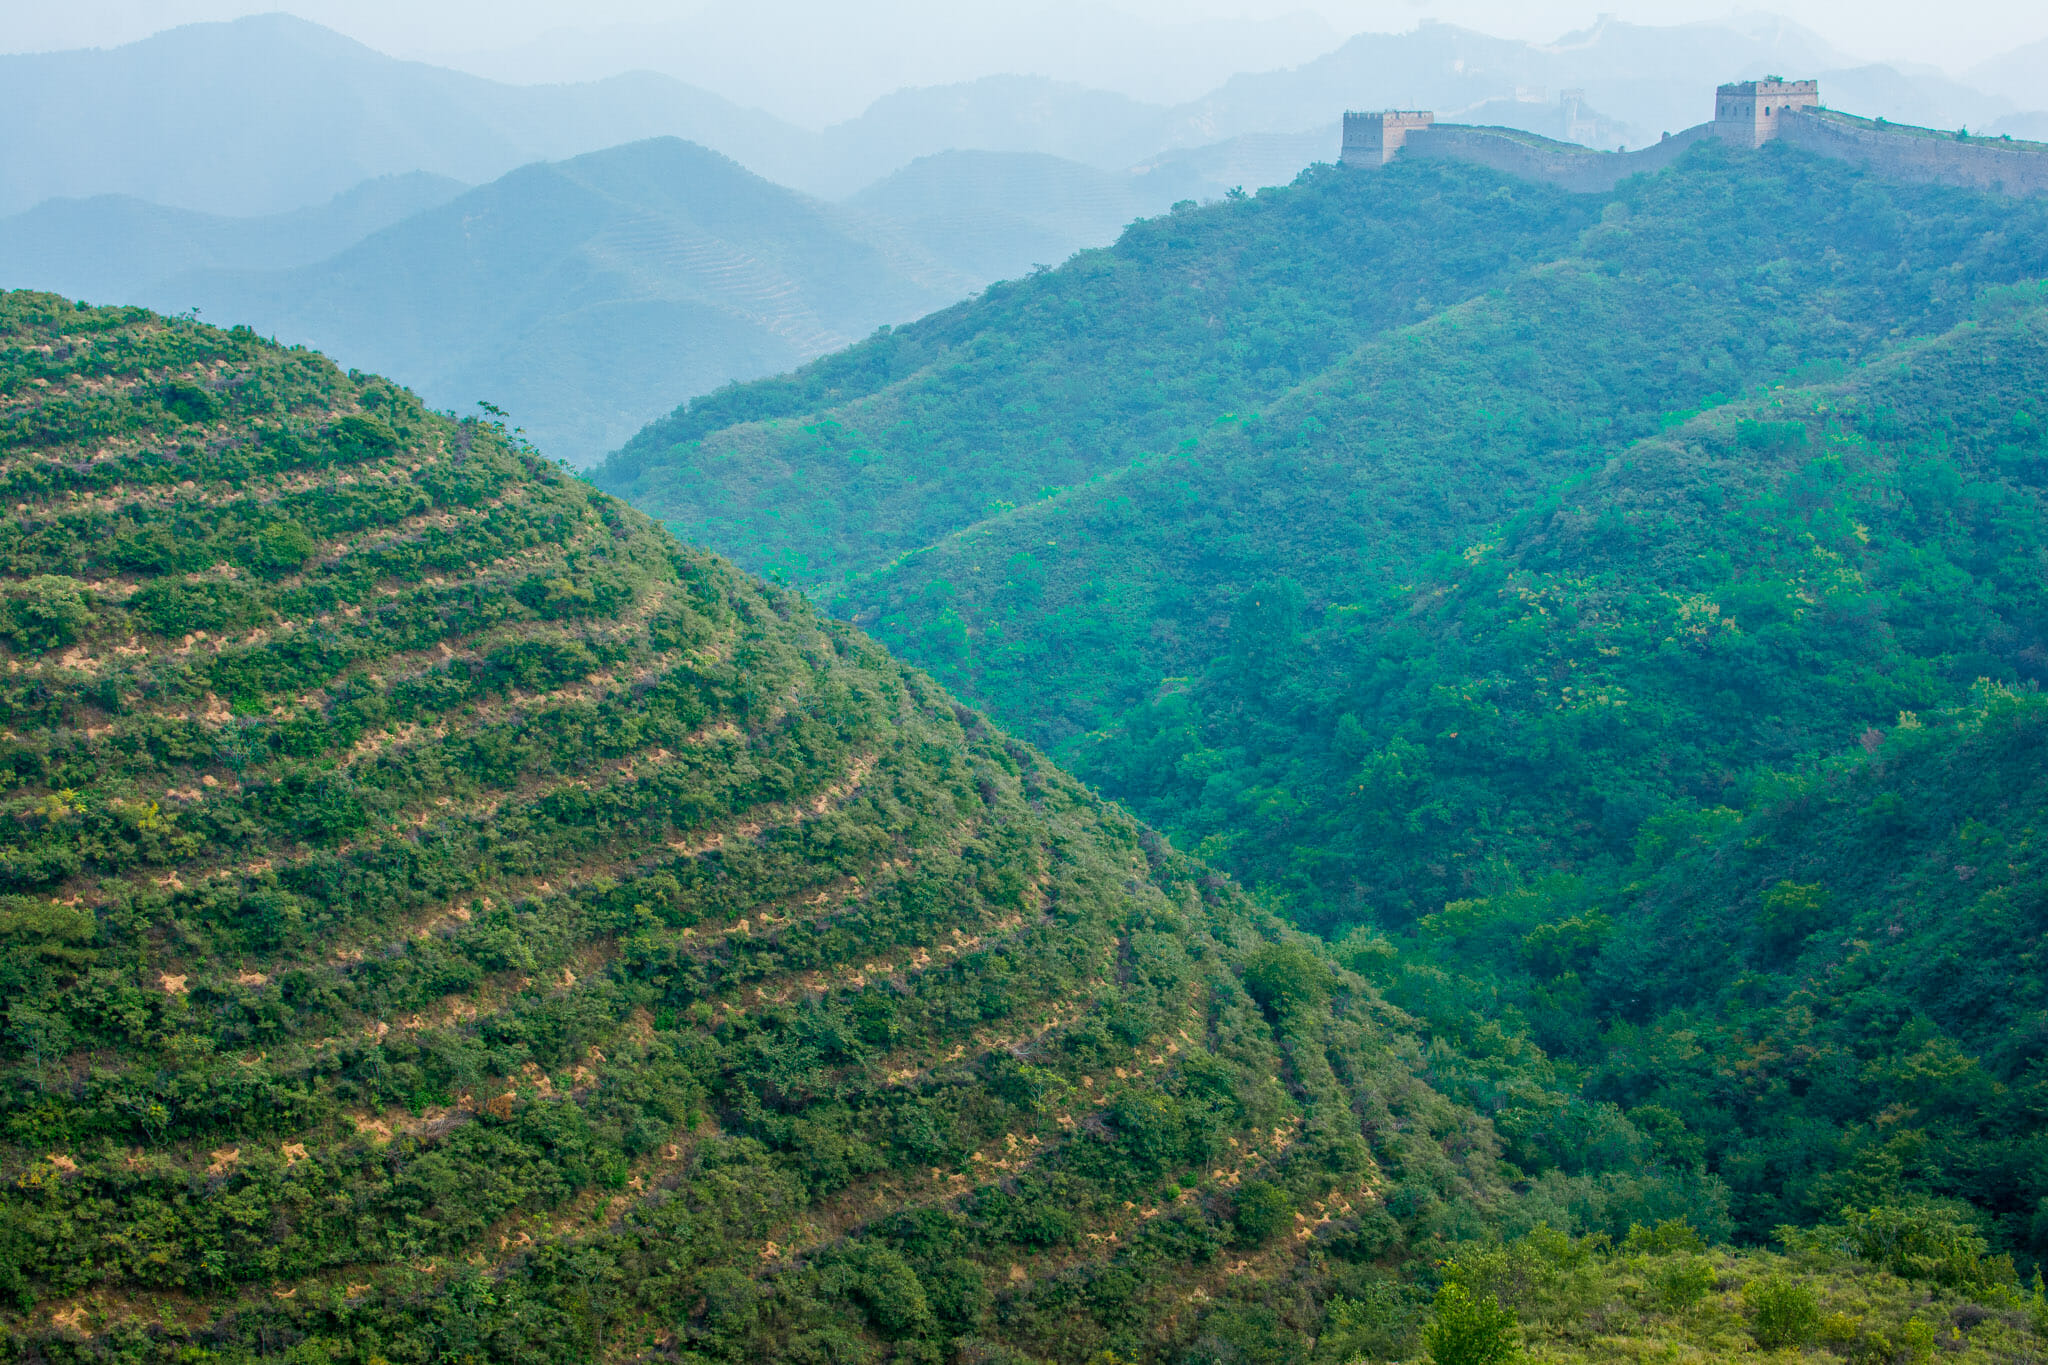 The natural landscapes of China